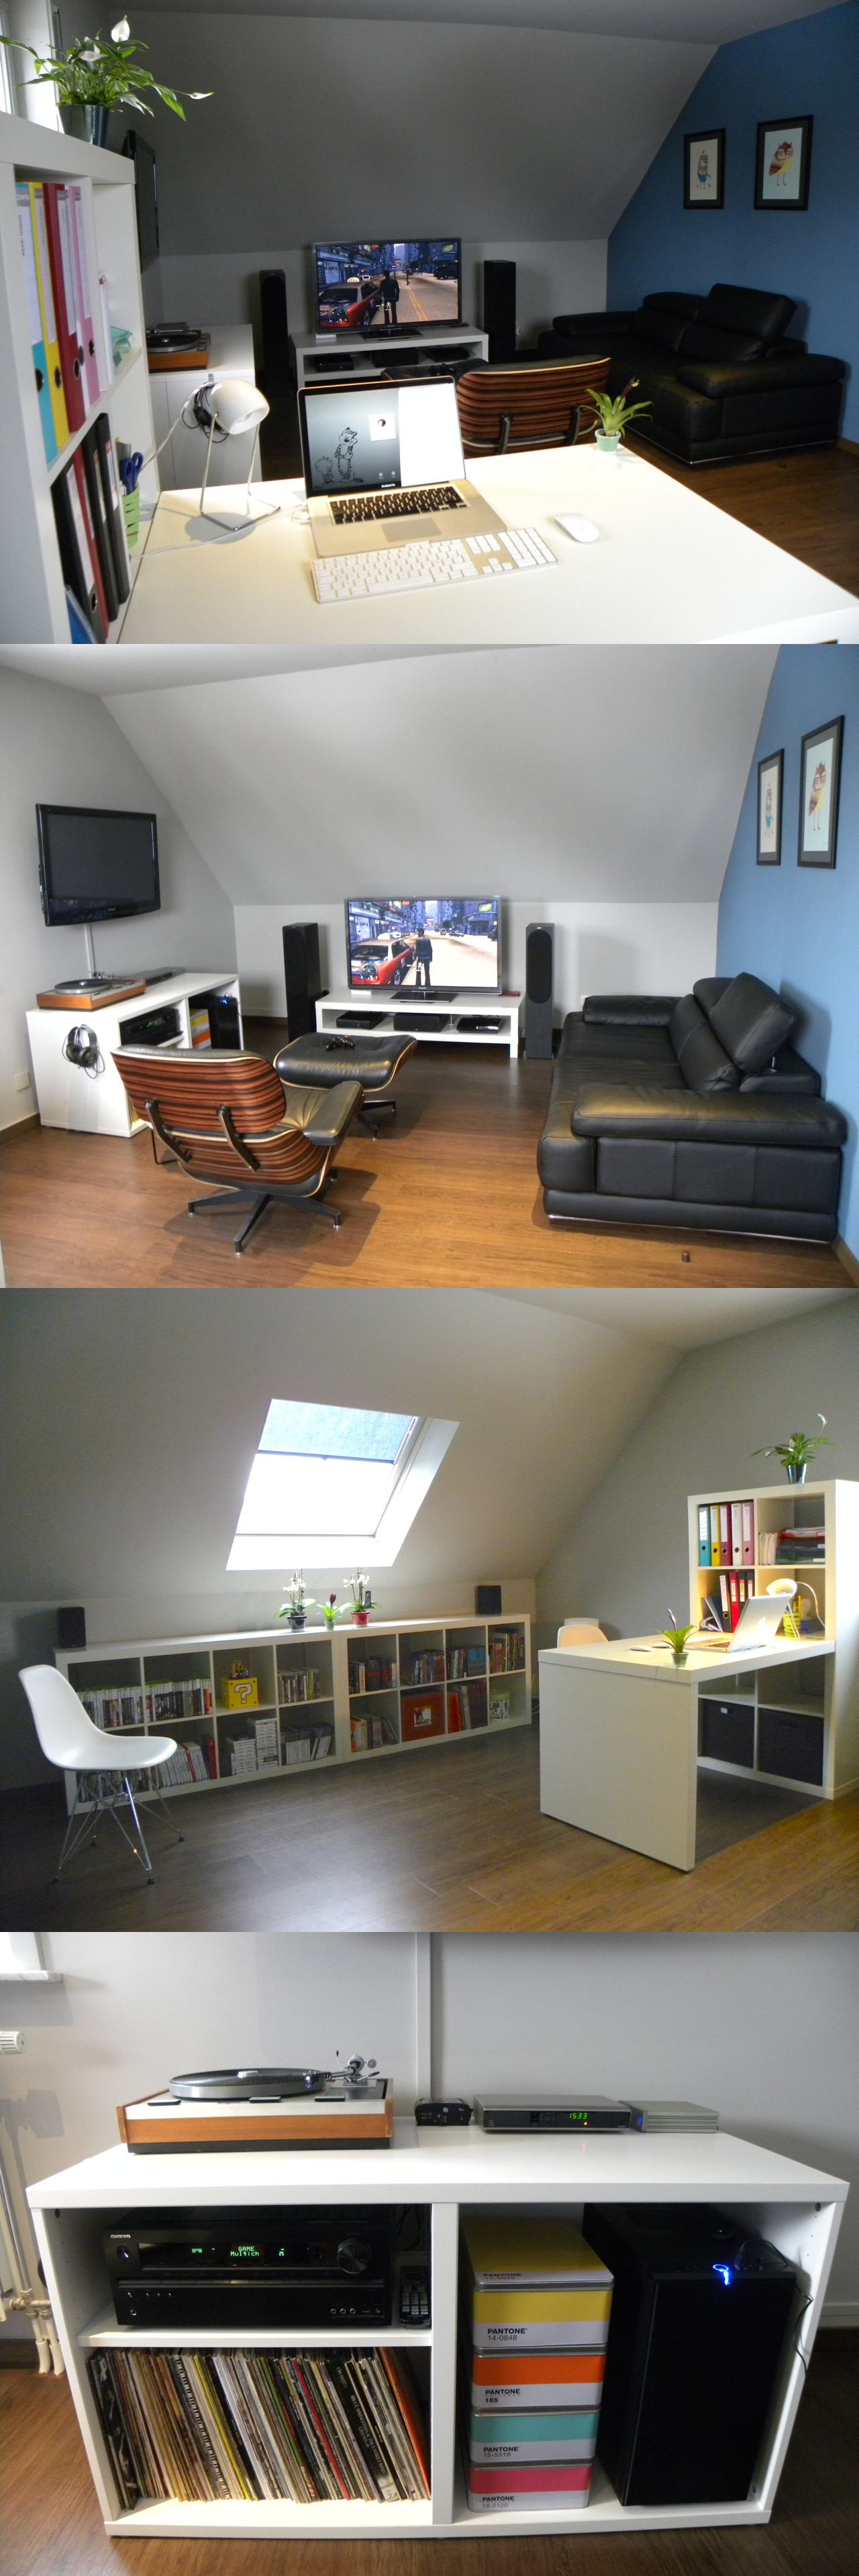 15 game room ideas you did not know about pros cons pinterest